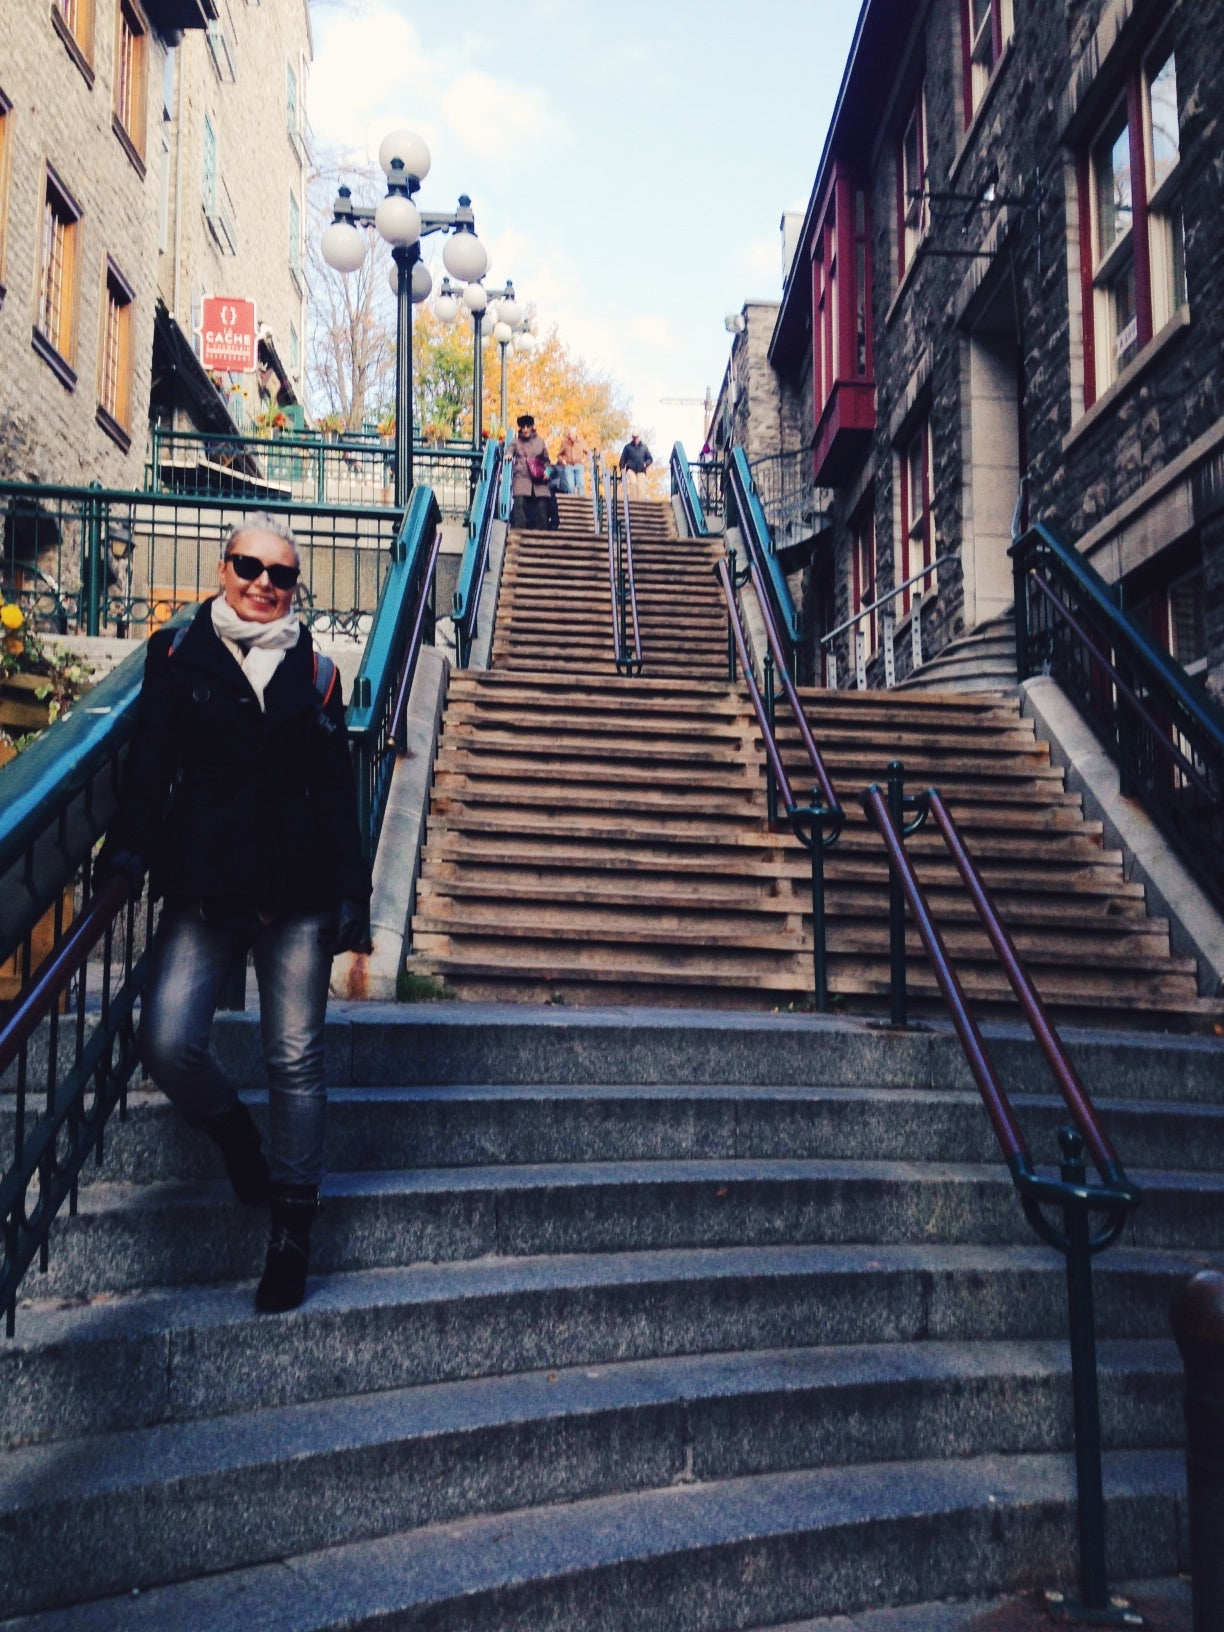 funicular, old town, lower town, upper town, quebec, quebec city, canada, canada travel, travel, autumn, fall, breakneck stairs